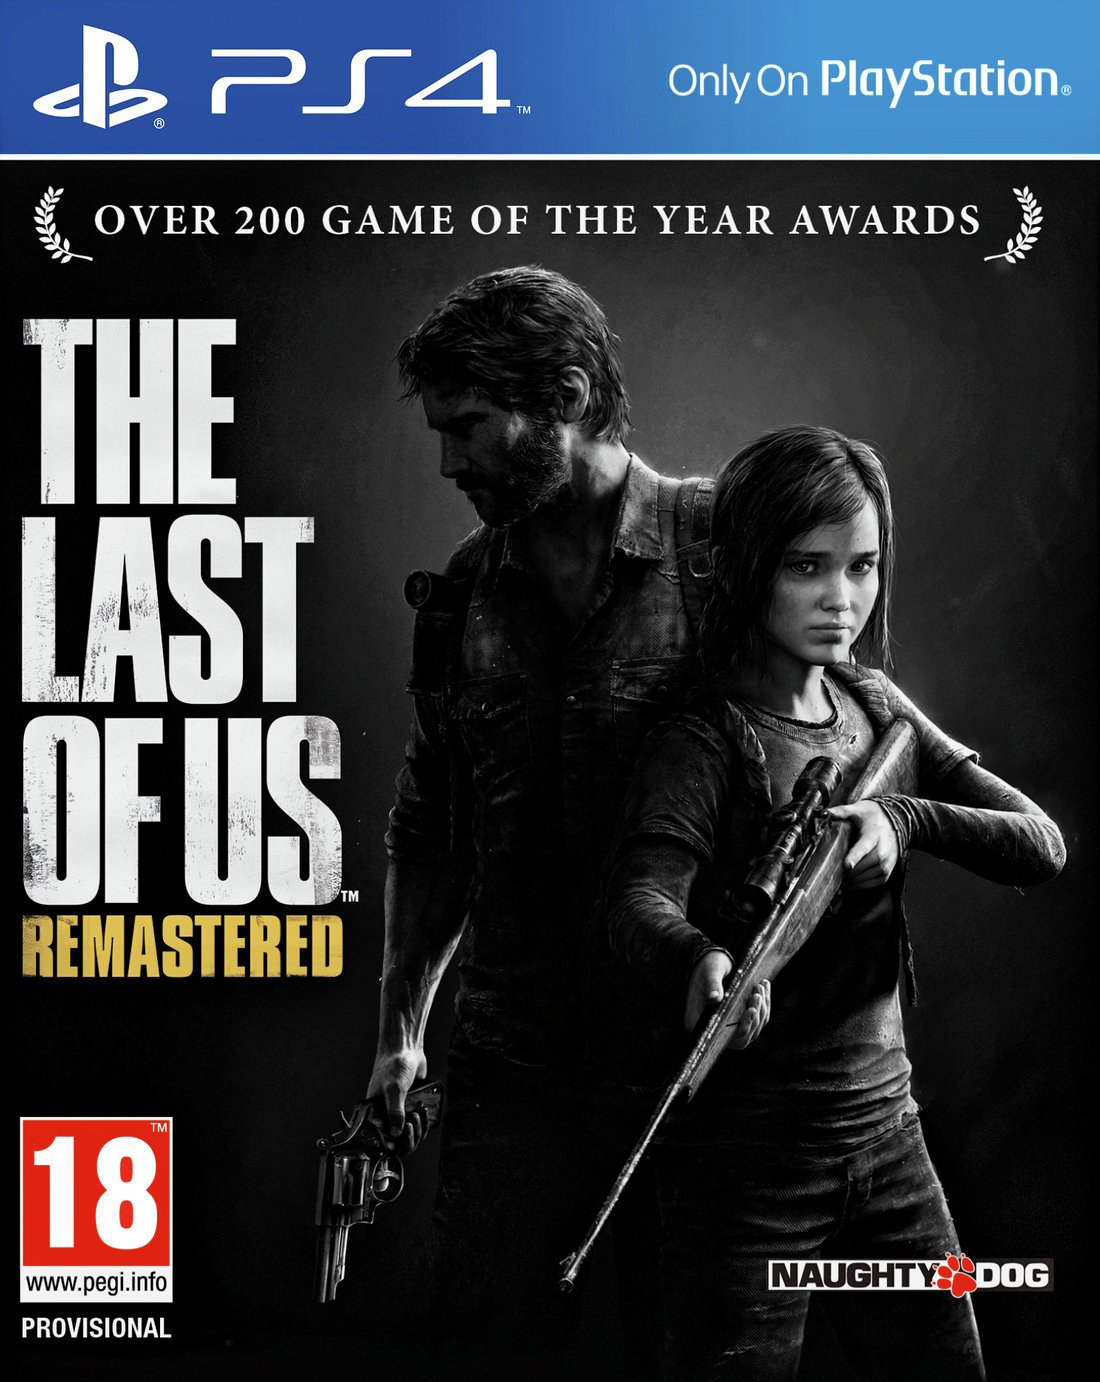 Ps4 pro enhanced The Last of Us Remastered PS4 Game.